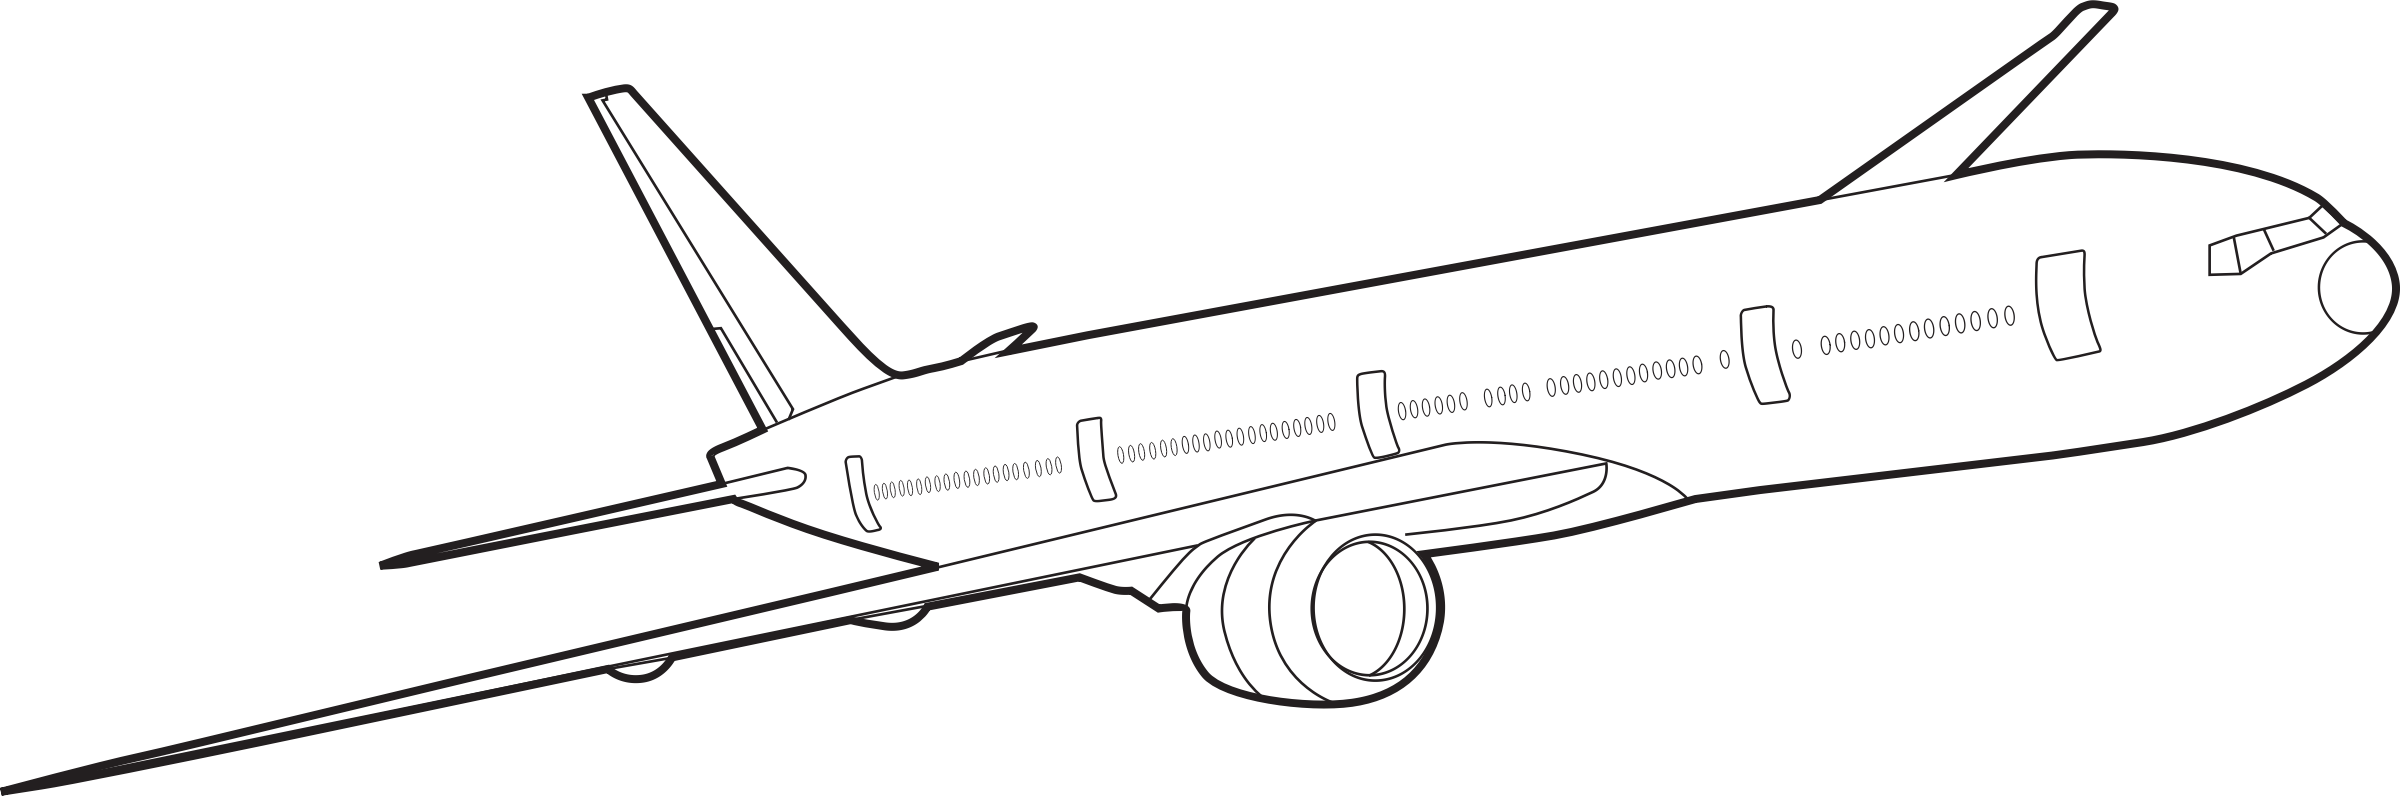 graphic transparent library Aeroplane drawing. Plane outline at getdrawings